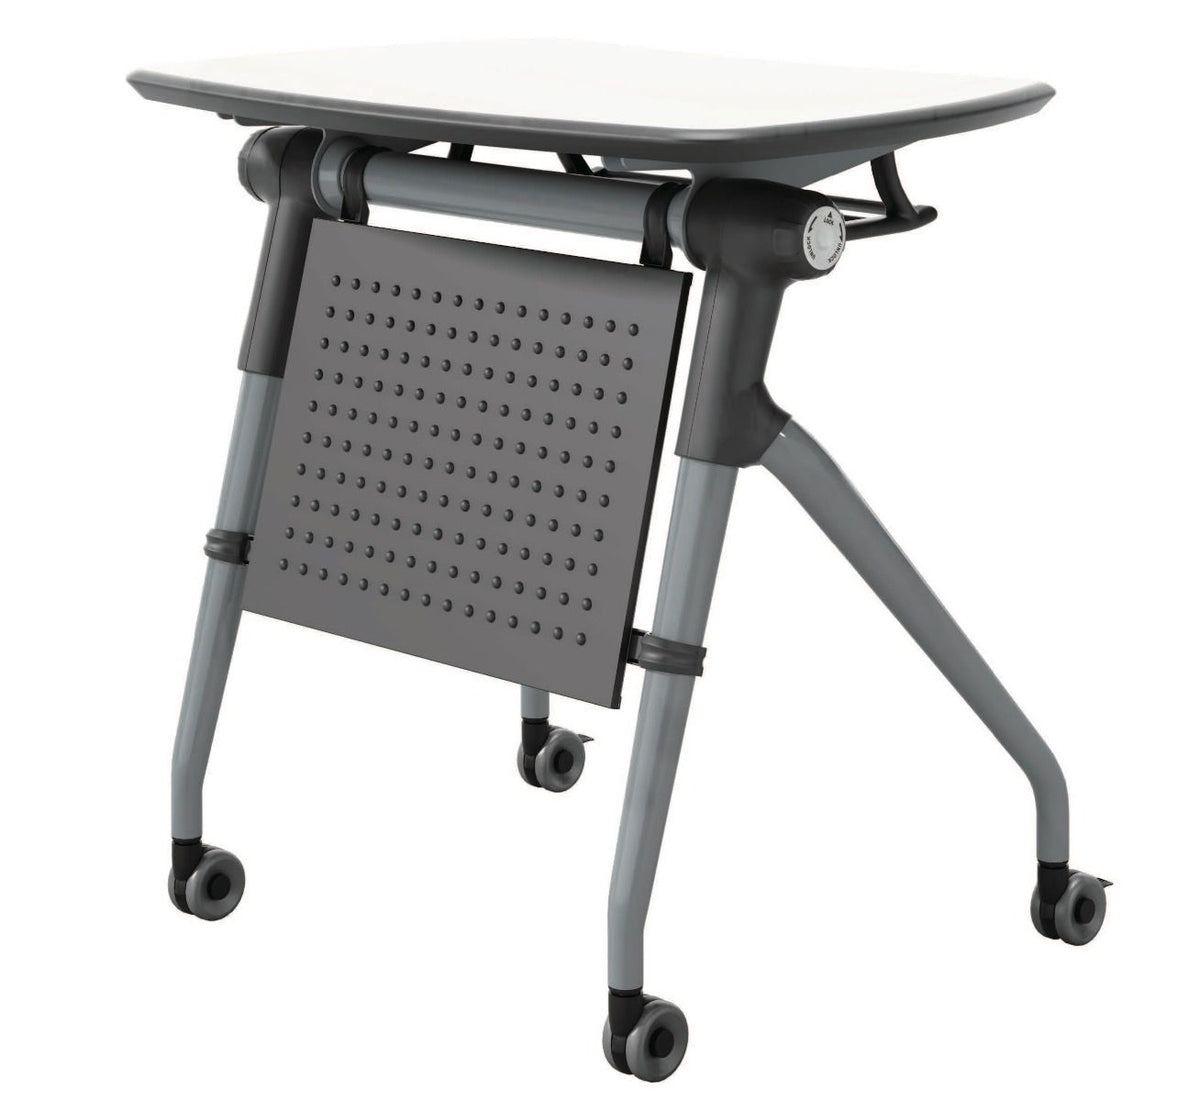 SIDELINE MOBILE FLIP TOP TABLE